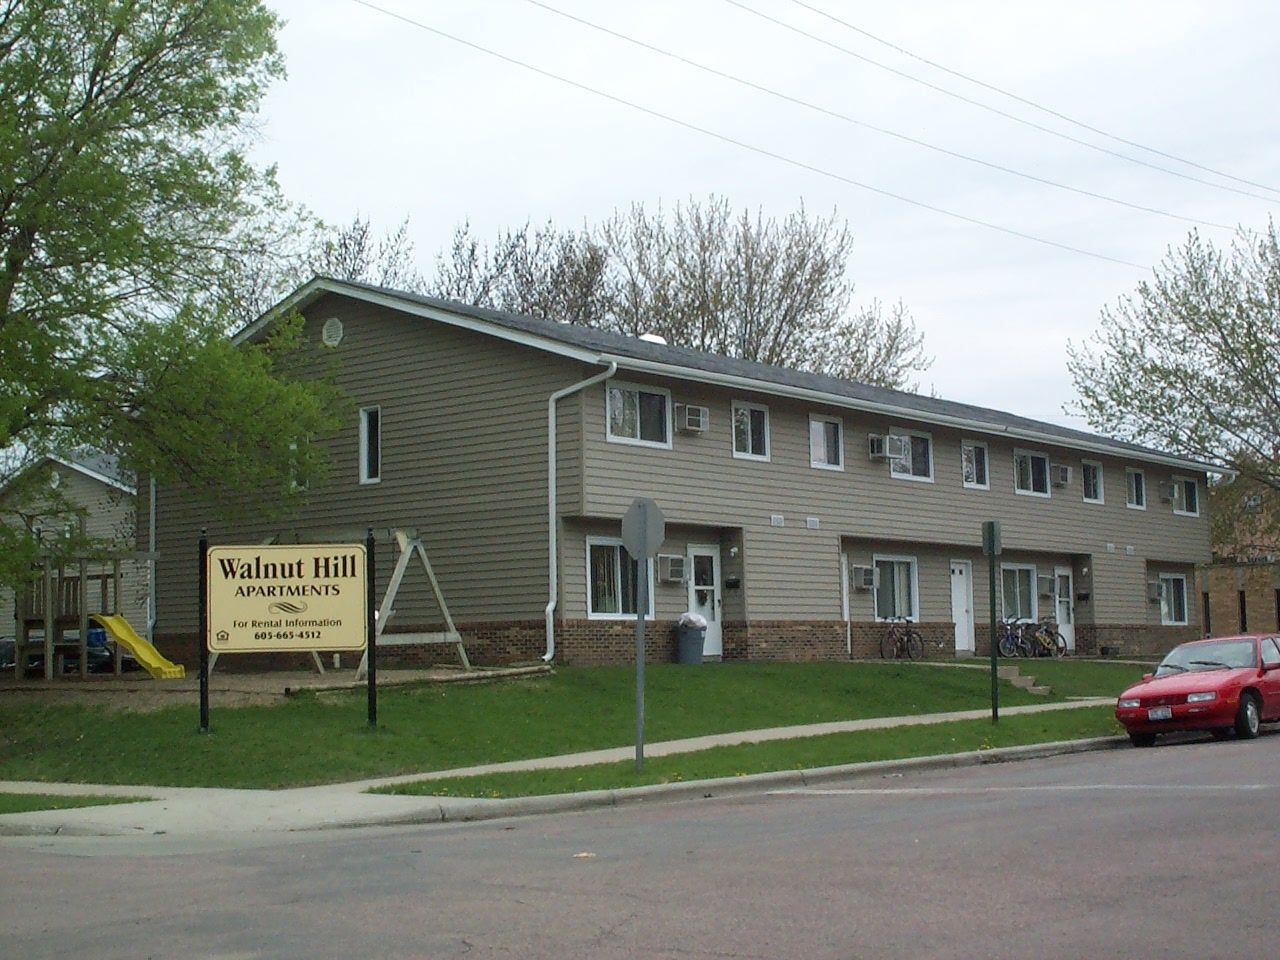 Walnut Hill Apartments